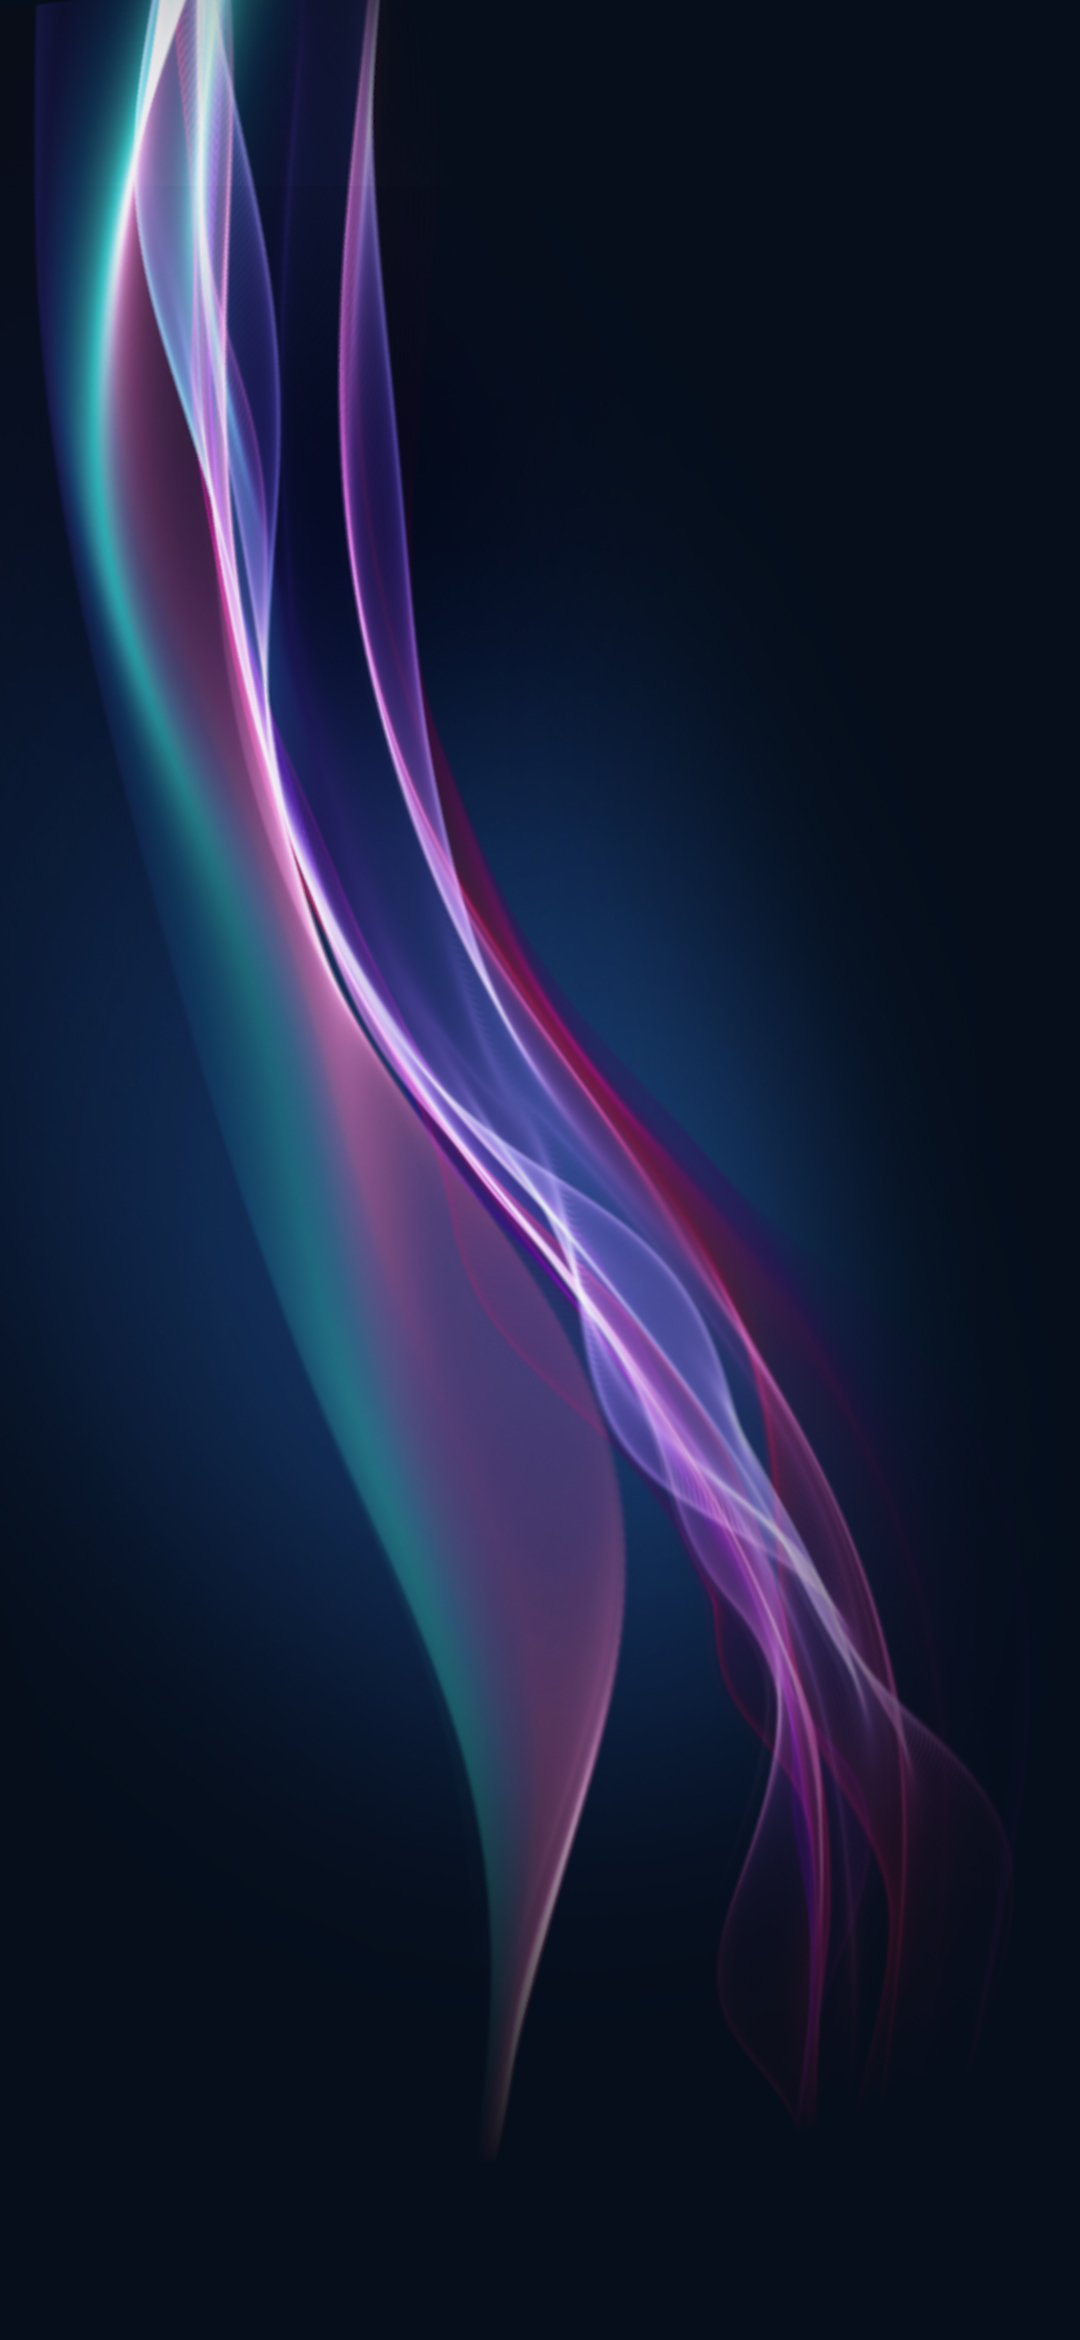 Motorola One Fusion Wallpaper YTECHB Exclusive in 2021 1080x2340